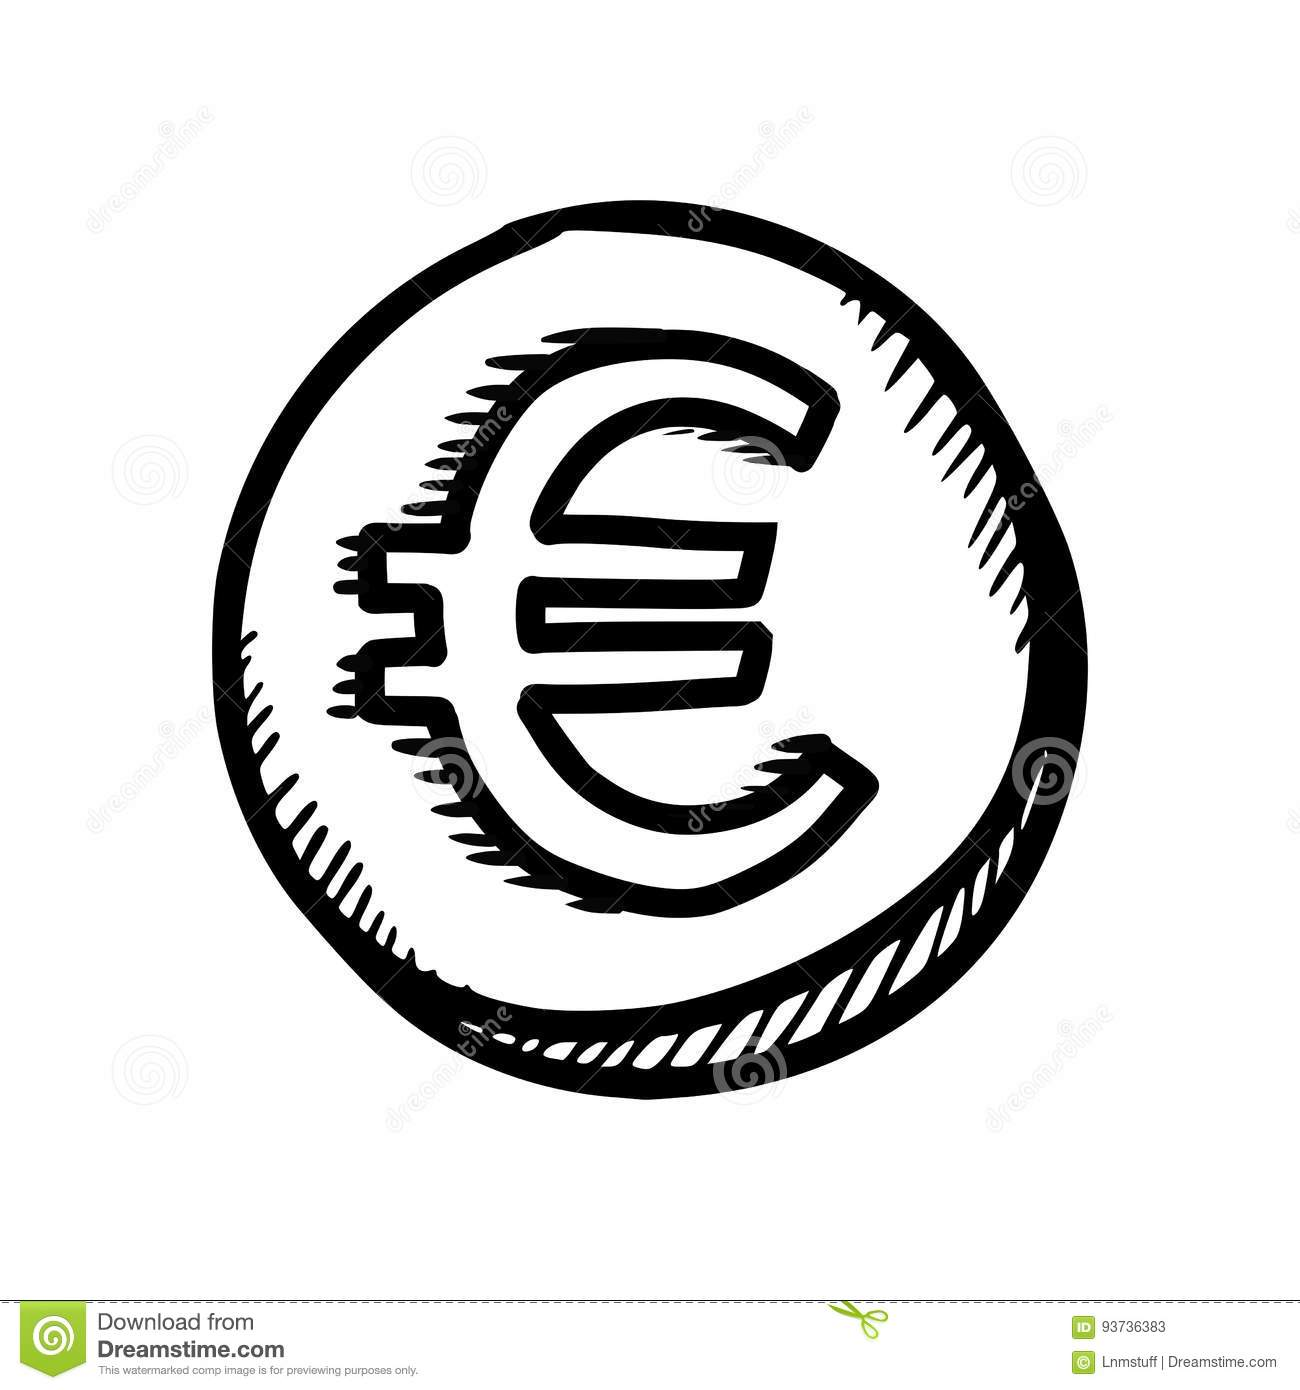 Euro Coin Stock Vector Illustration Of Circle Exchange 93736383